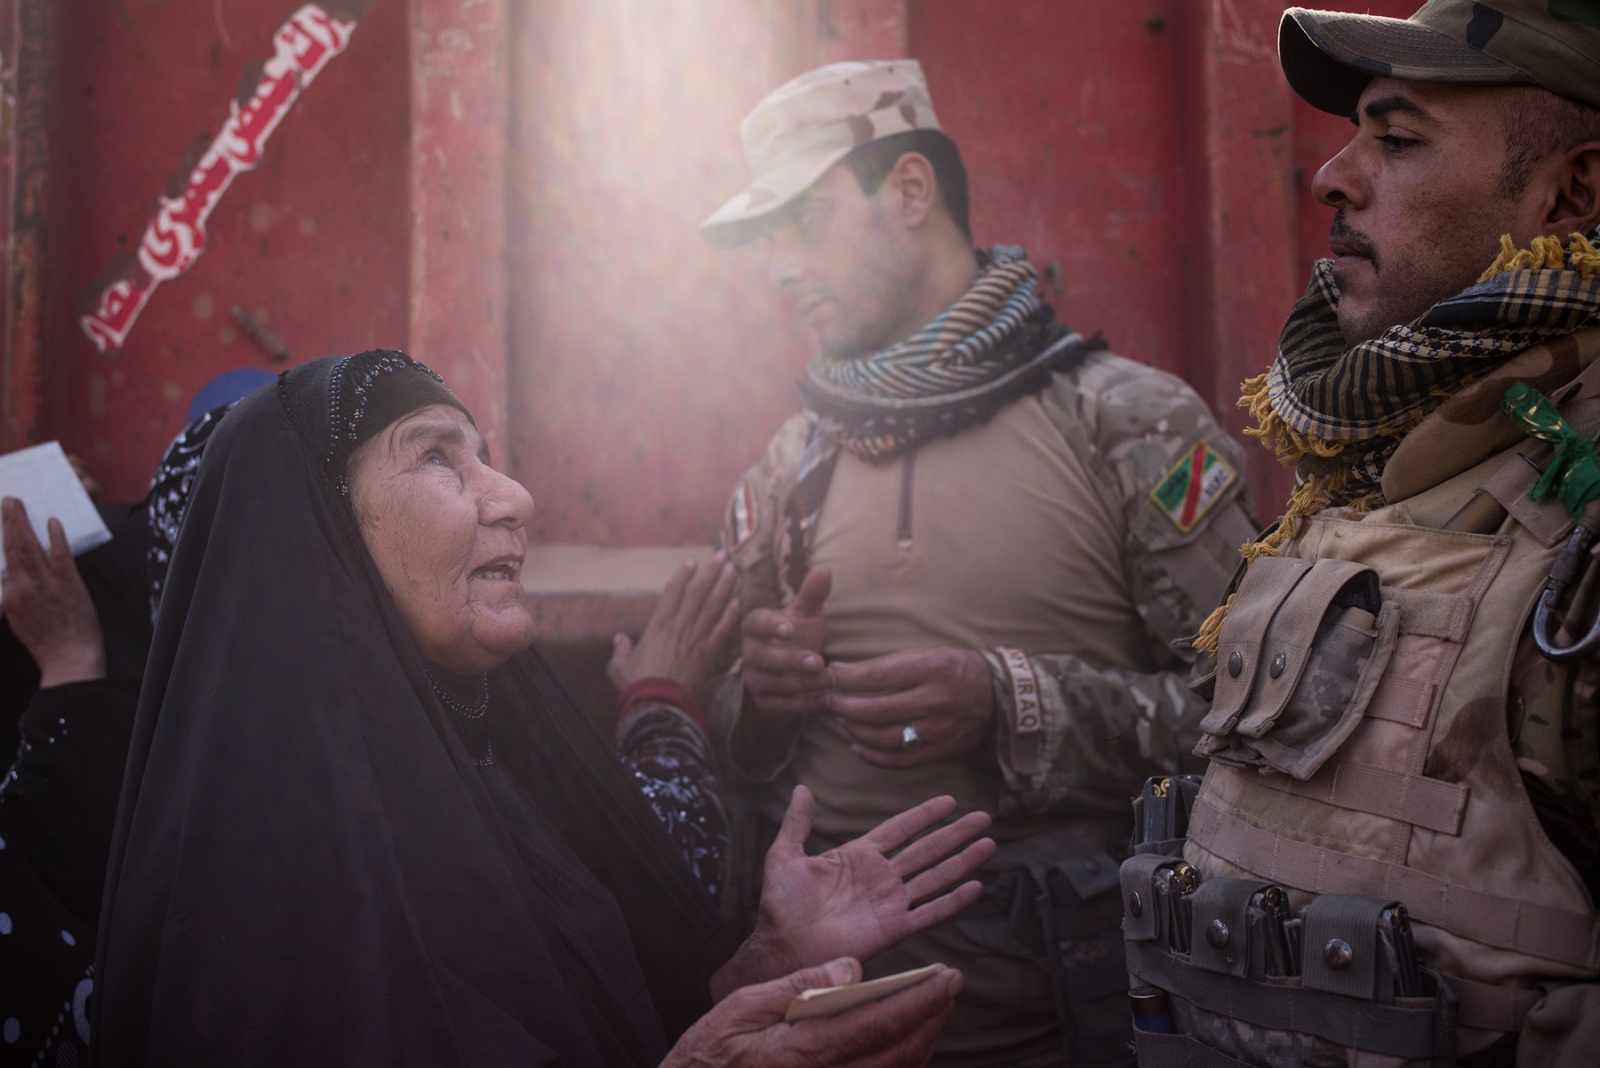 An elderly woman pleads with a soldier of the Iraqi Army's Ninth Division to give local civilians food aid in the Entisar neighborhood of Mosul, Iraq, just meters from the frontline where Iraqi forces are in engaged in fighting with ISIS in Hay Salam, November 2016. A helicopter strafed nearby buildings where ISIS snipers were positioned. 1 million civilians are estimated to be in Mosul, where many have been prevented from leaving by ISIS, while others have remained in their homes rather than fleeing to internally displaced persons camps. The presence of so many civilians inside the city has slowed the offensive, which began last month against the extremist group in taking back the so-called capital of their caliphate. For the civilians who remain, they face food shortages and the constant threat of being caught in the crossfire.